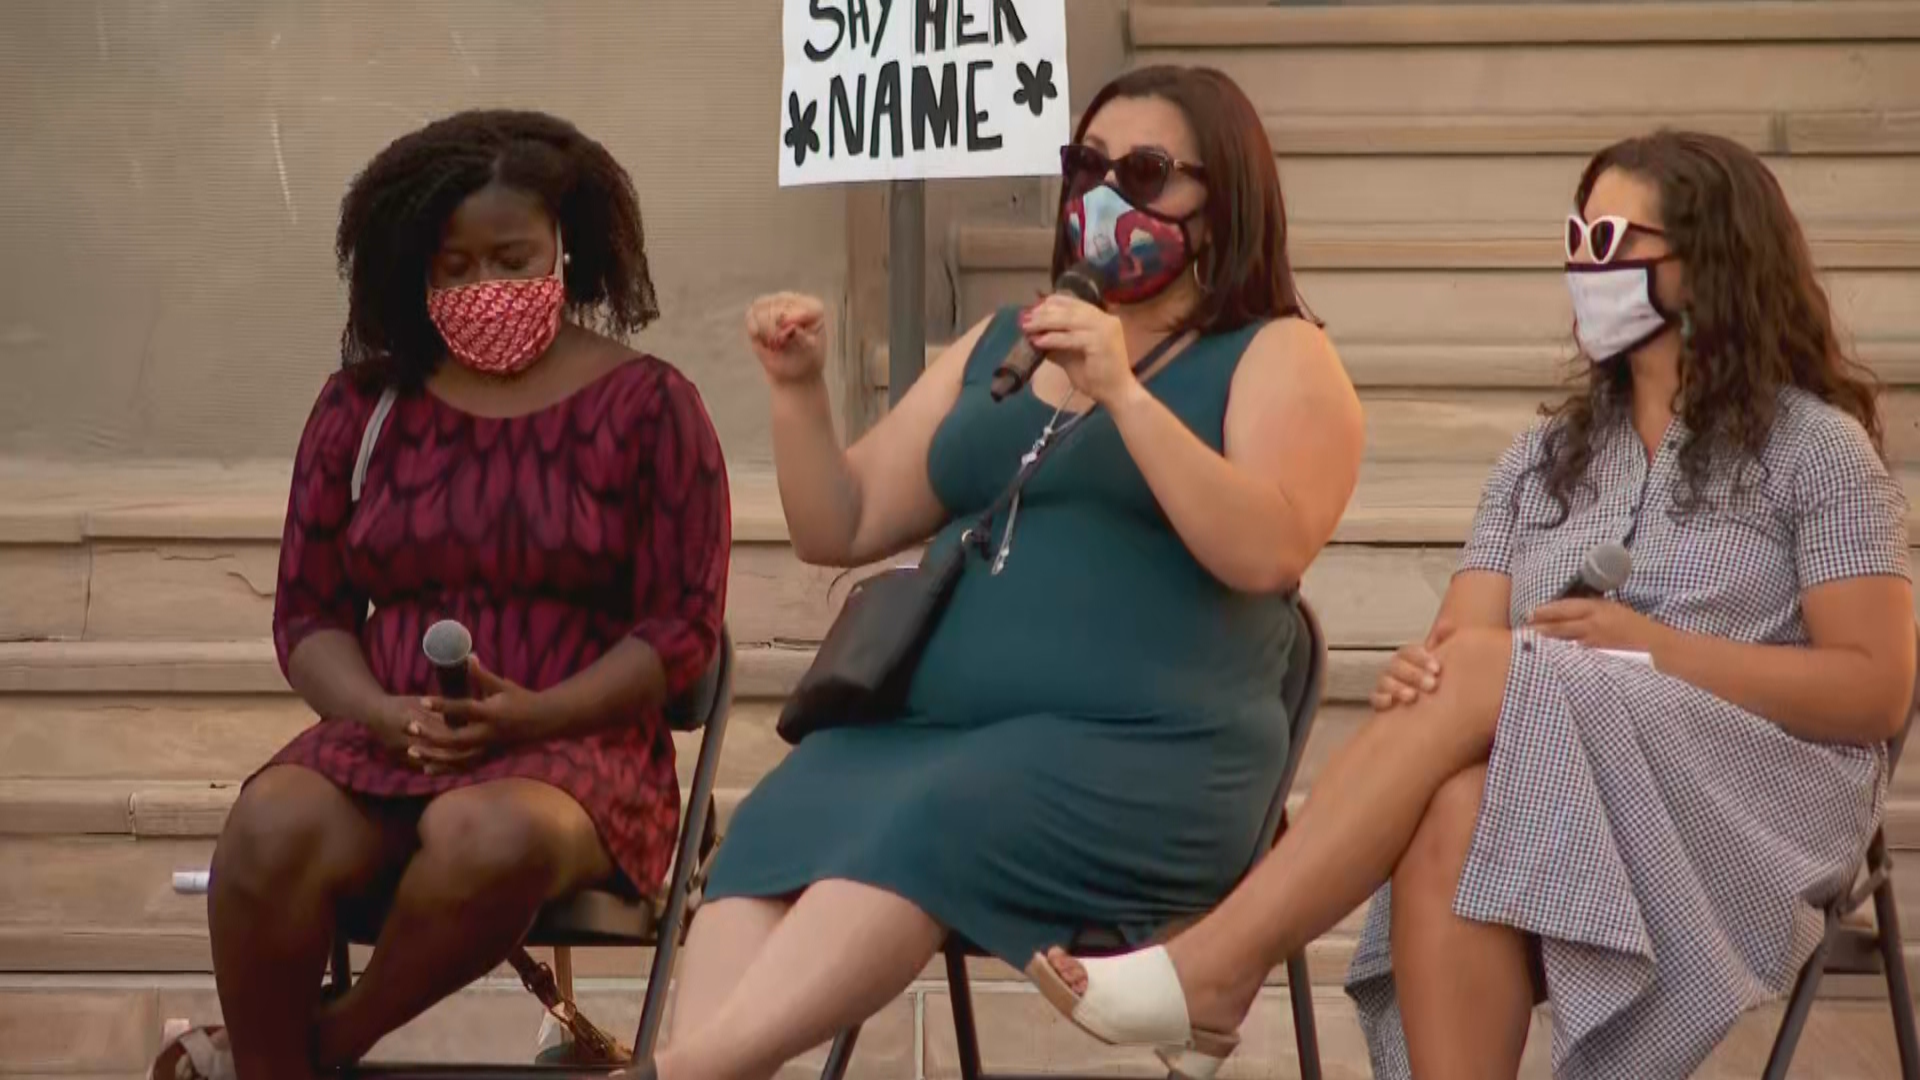 Demonstrators in Salt Lake City on Friday hoped to raise awareness for women who've been victims of racial injustice. (Photo: KUTV)